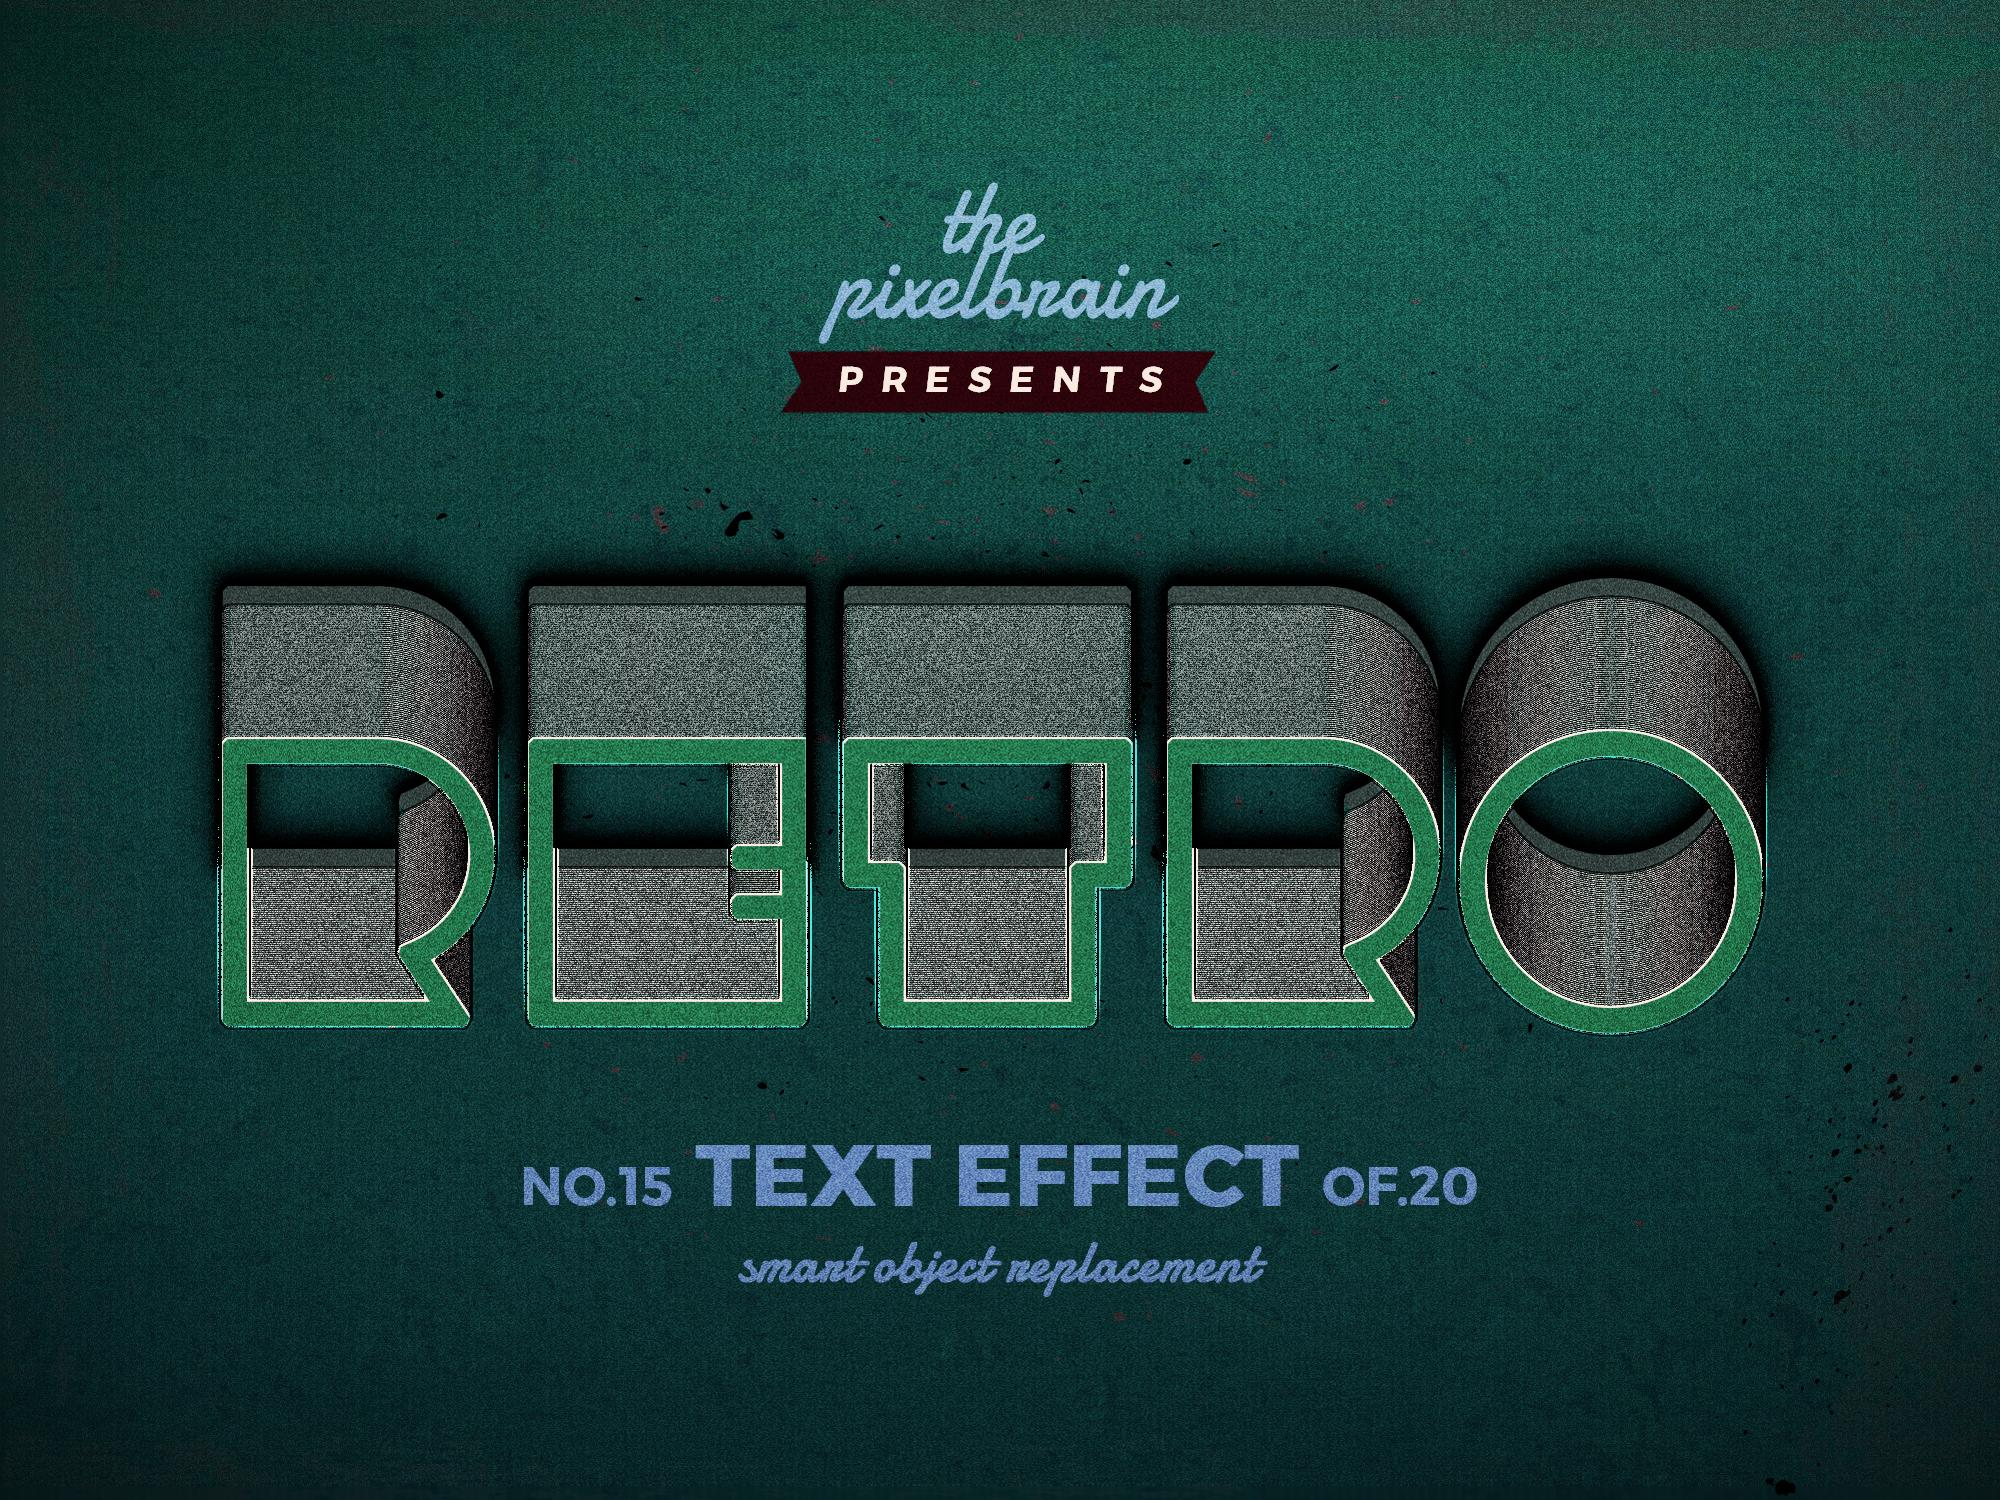 Chia sẻ bộ Retro Vintage Text Effects 5